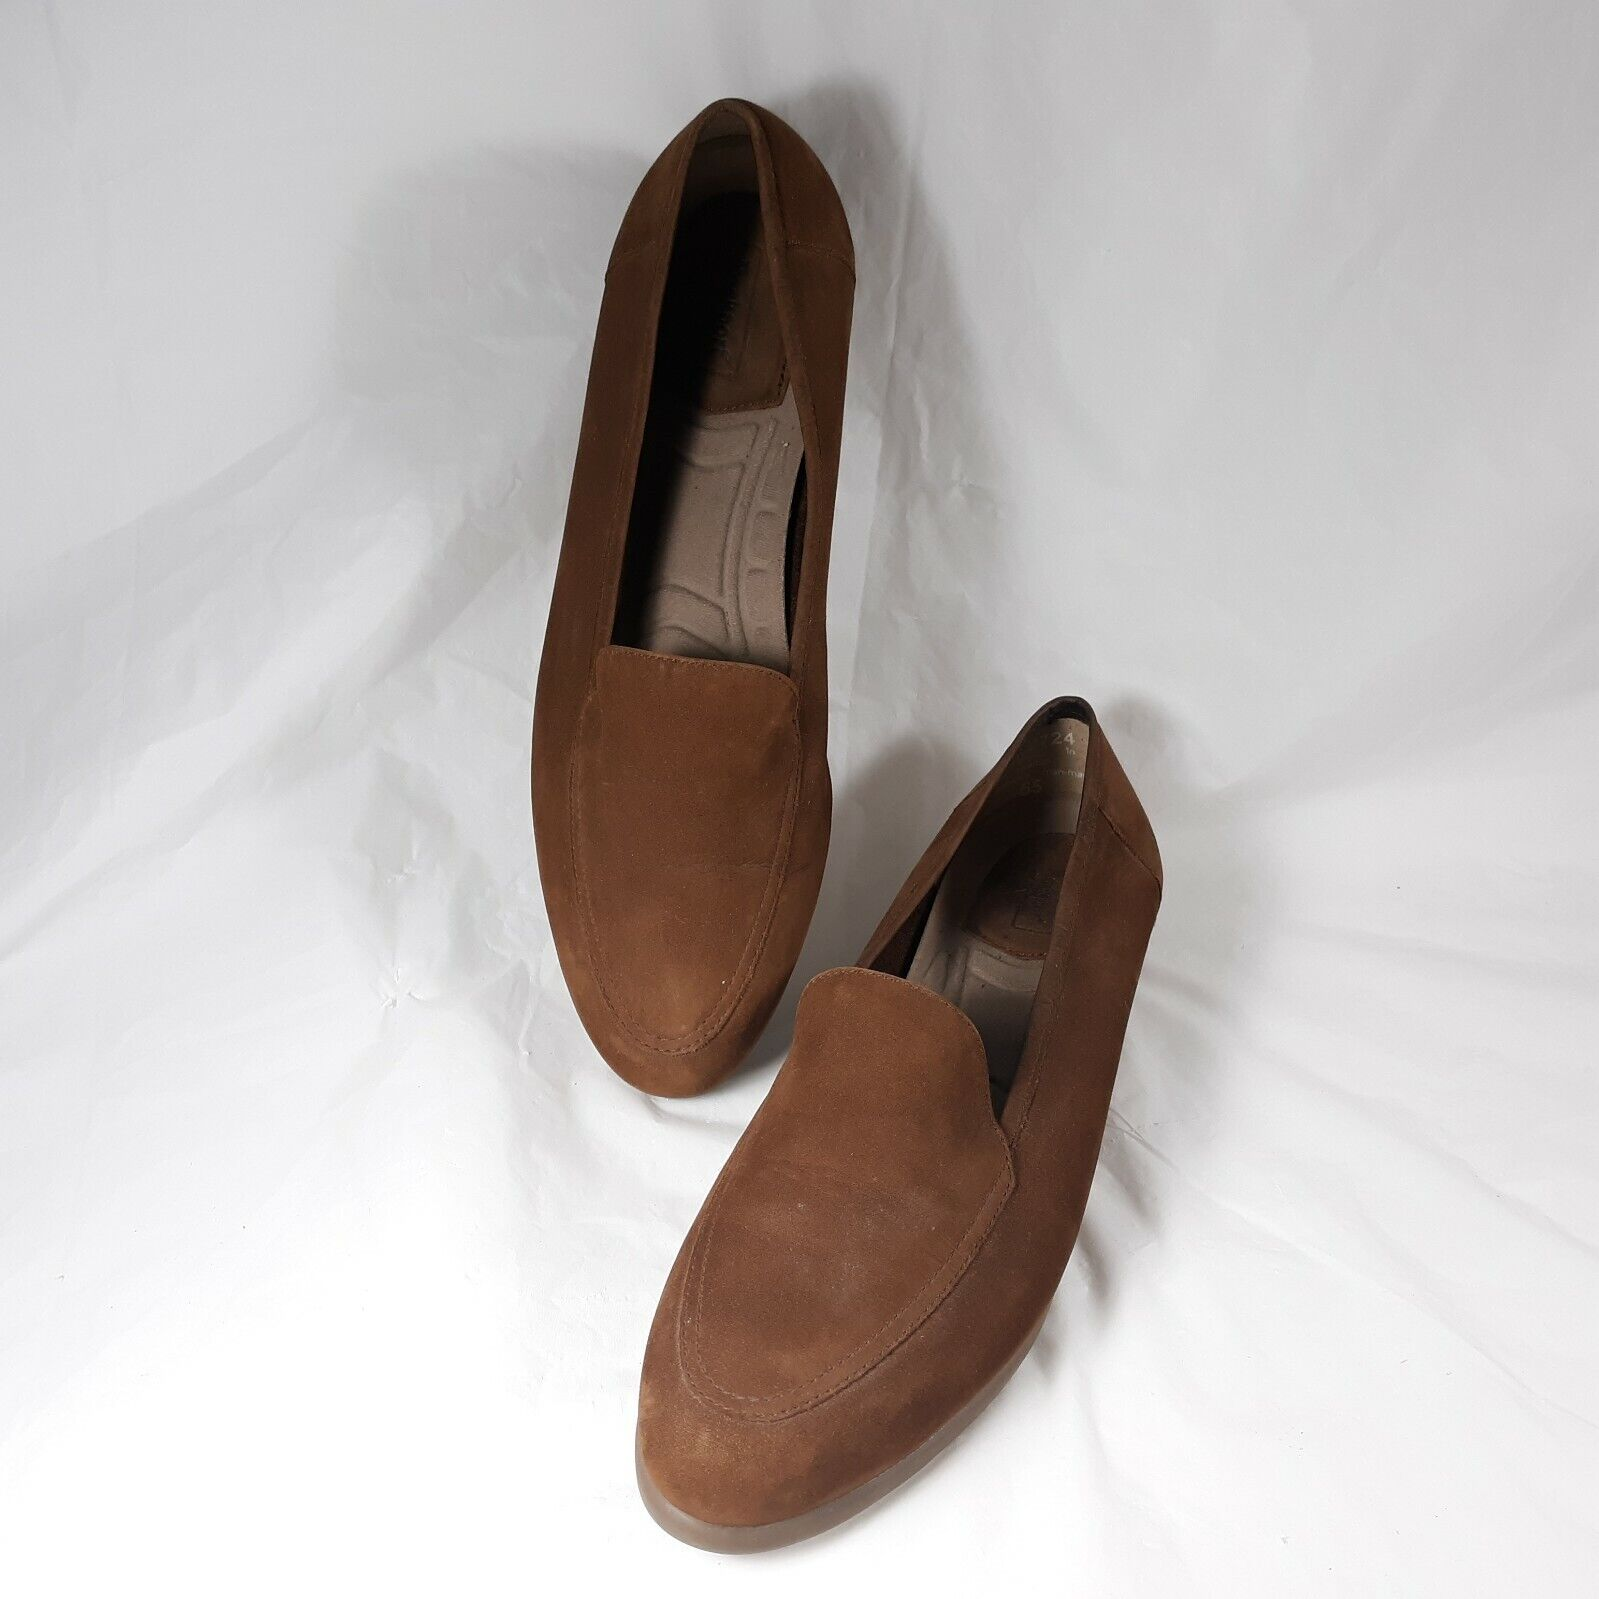 Rockport Brown Loafer Size Womens 8N Leather Upper